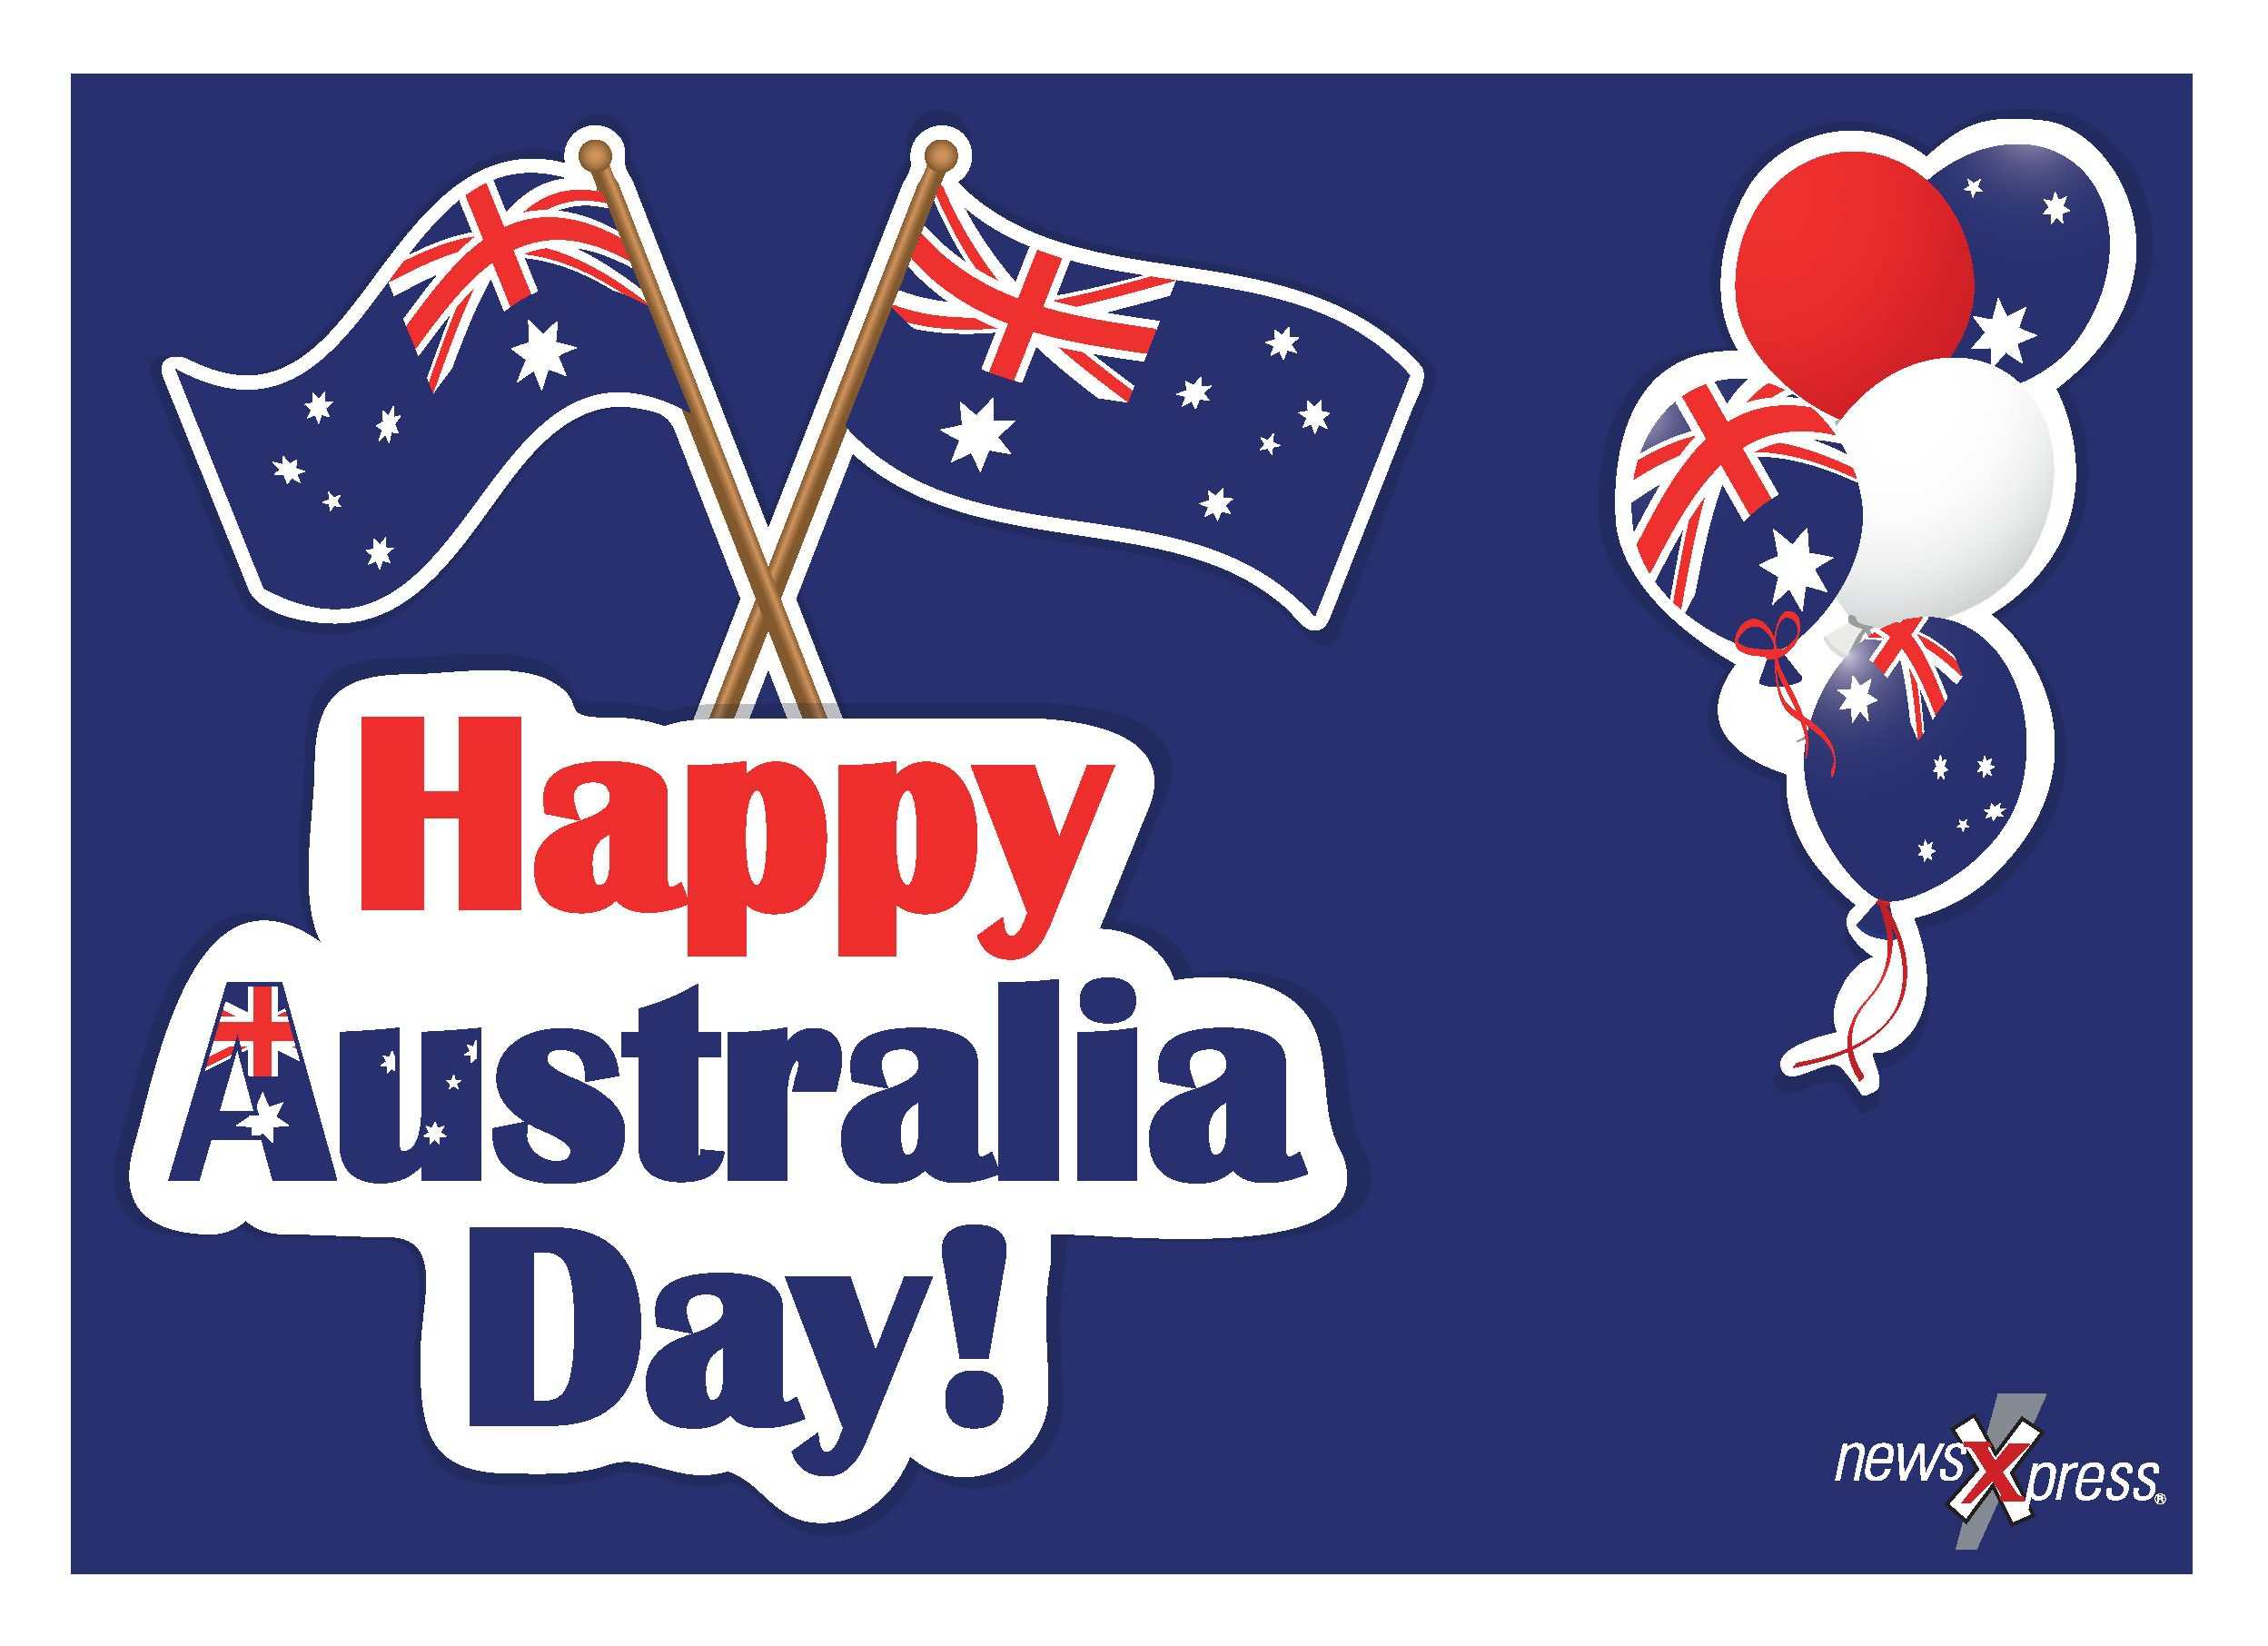 Australia day images clipart image free Australia day clipart 2 » Clipart Station image free